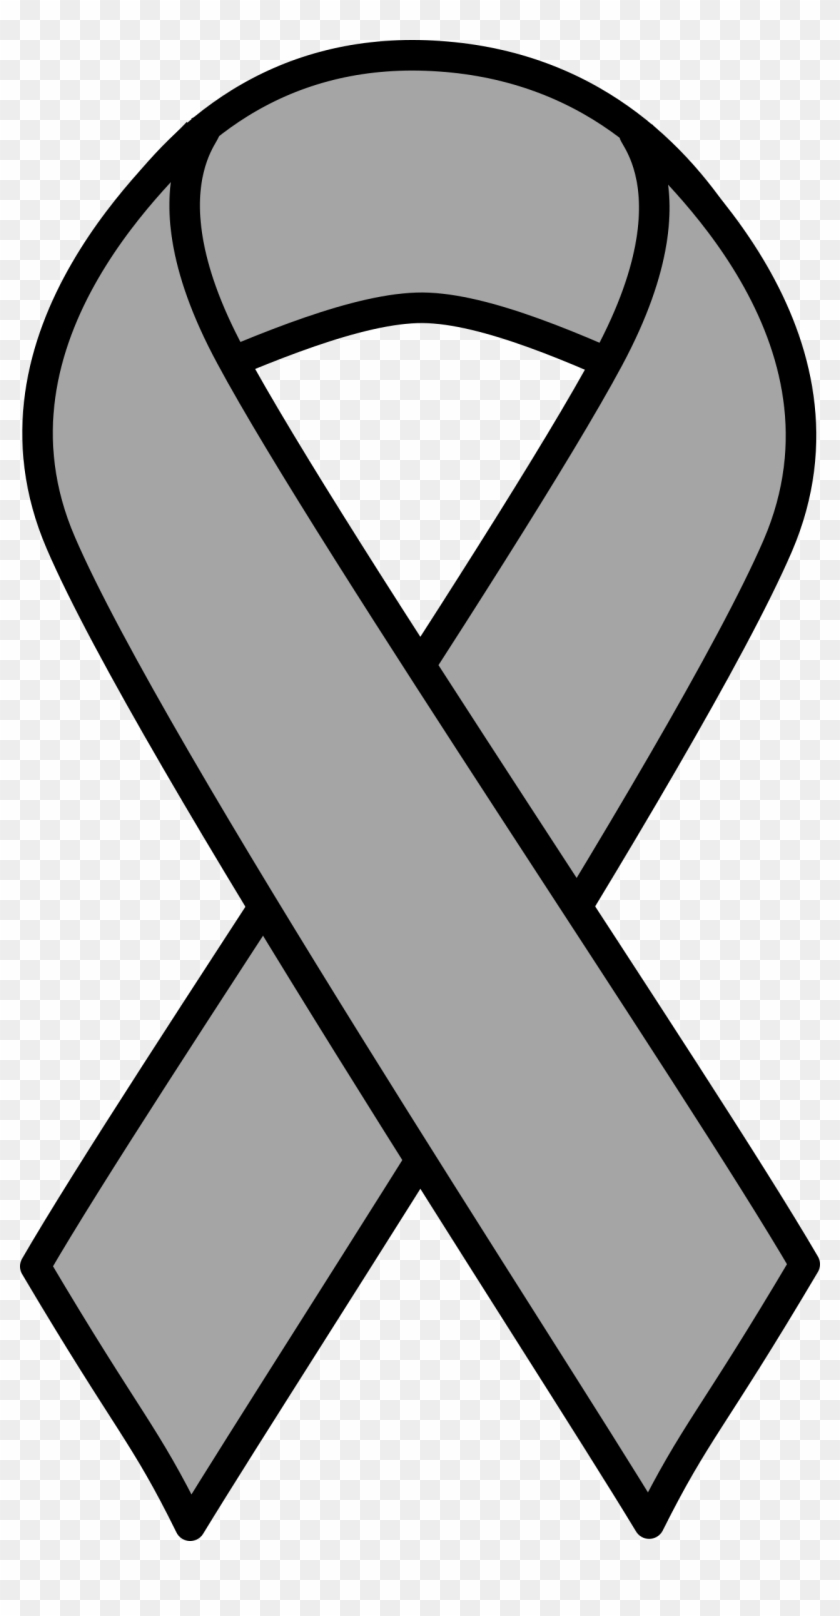 Clipart - Gold Cancer Ribbon #159215